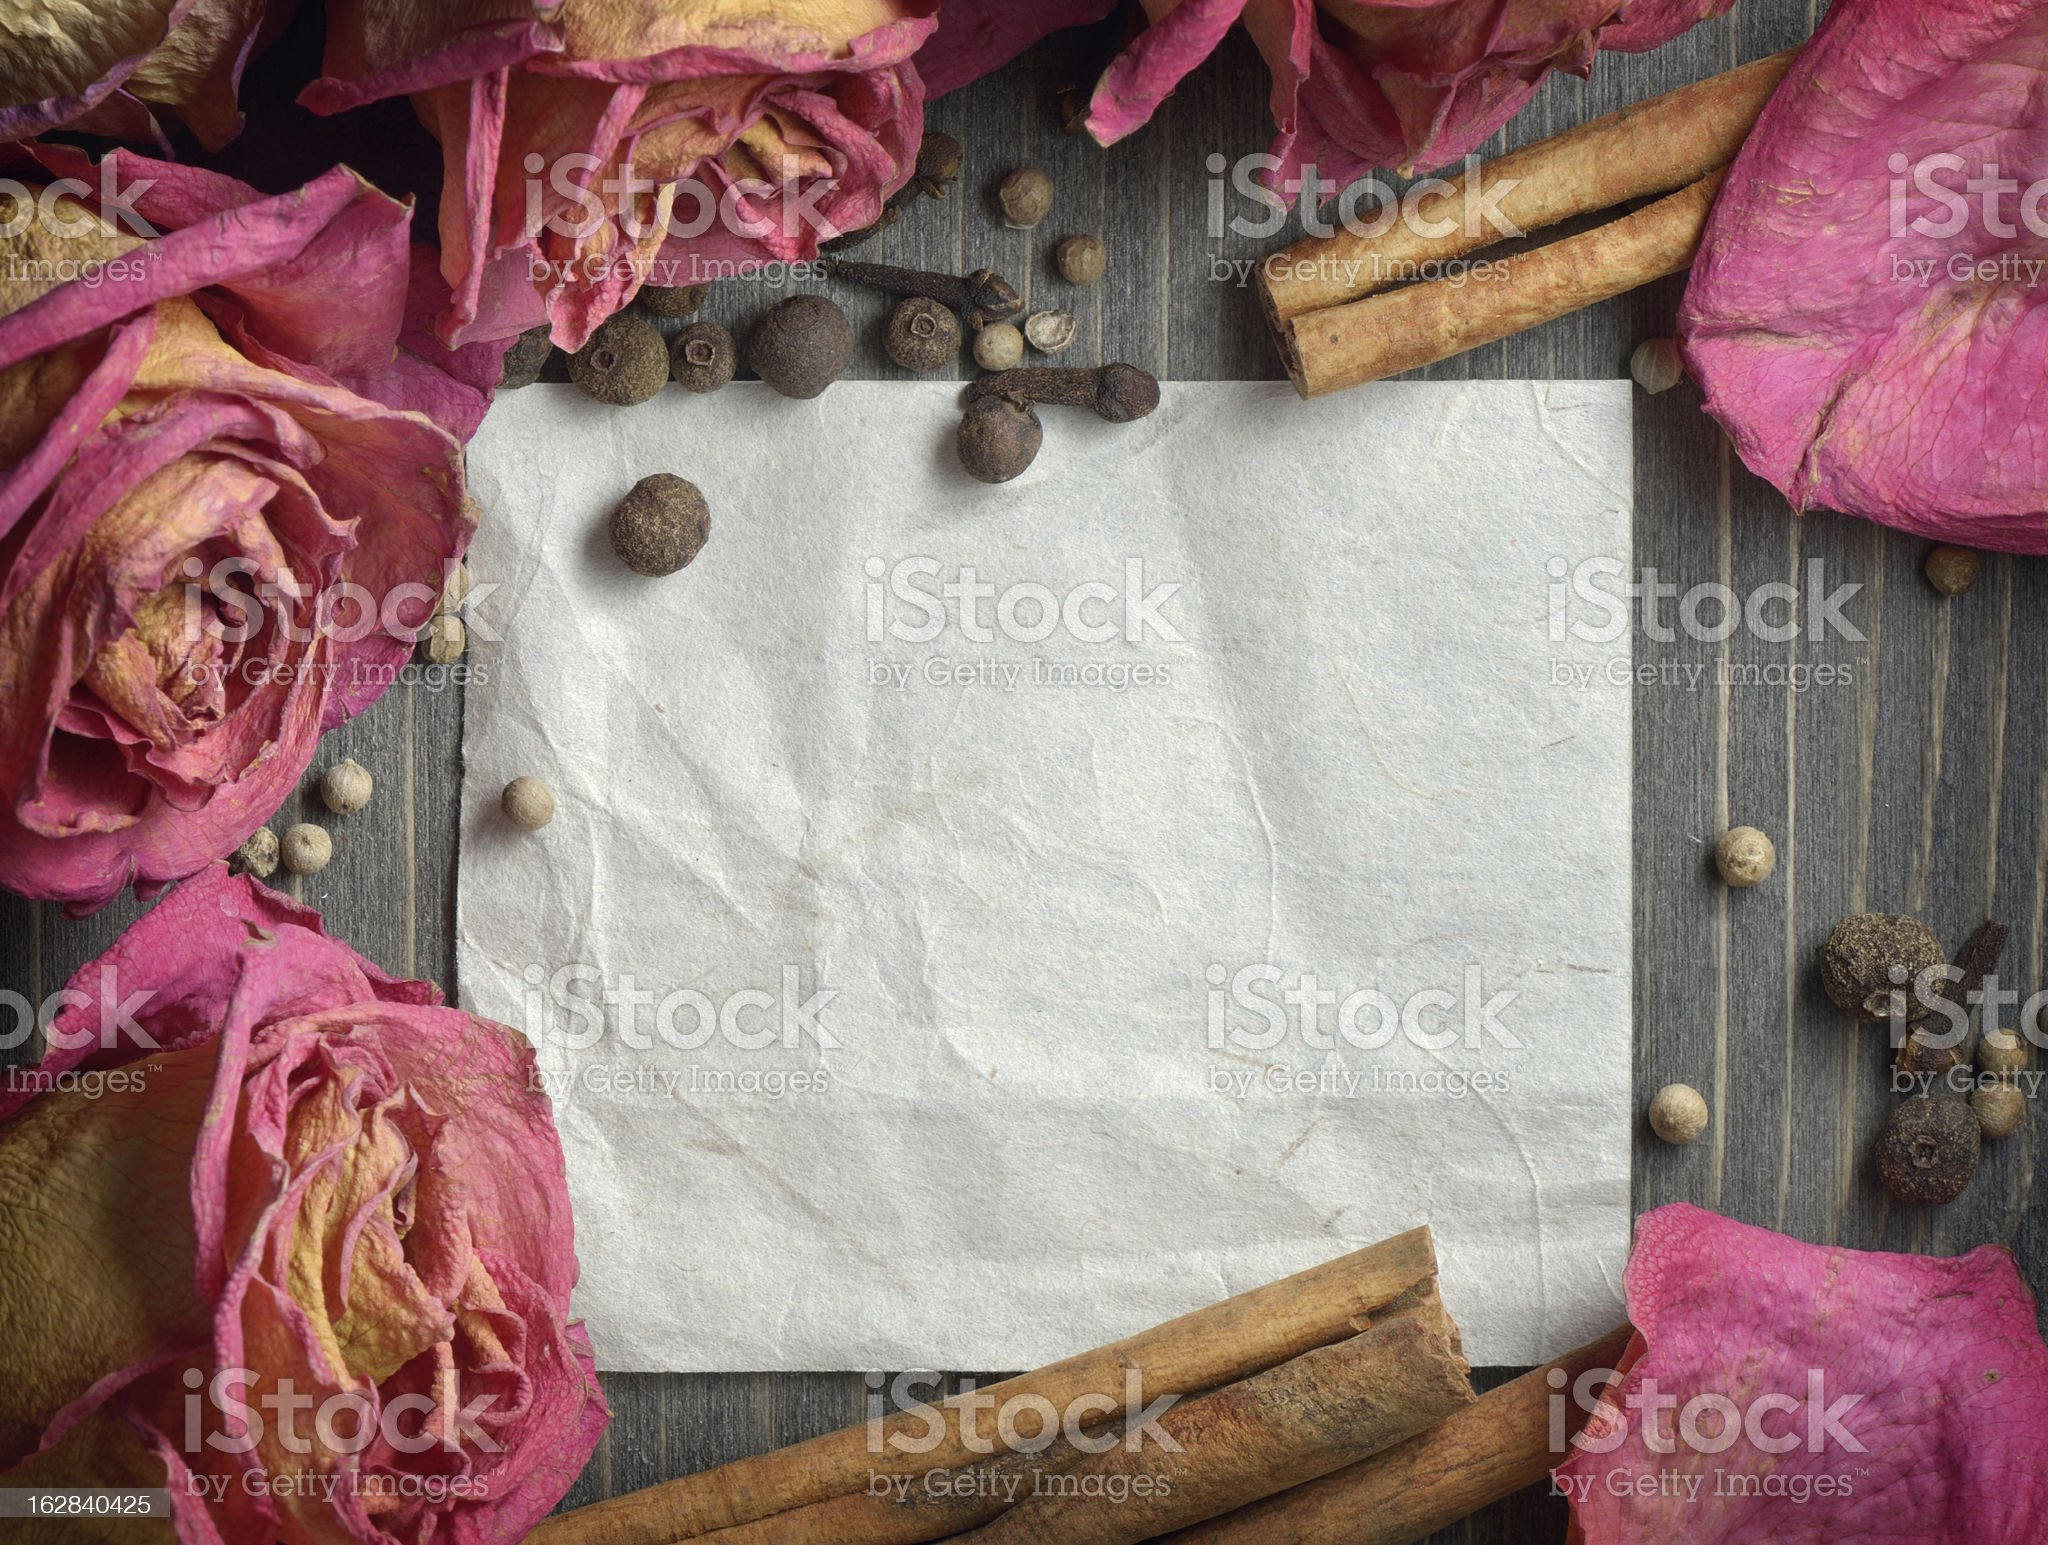 Background with natural decor royalty-free stock photo